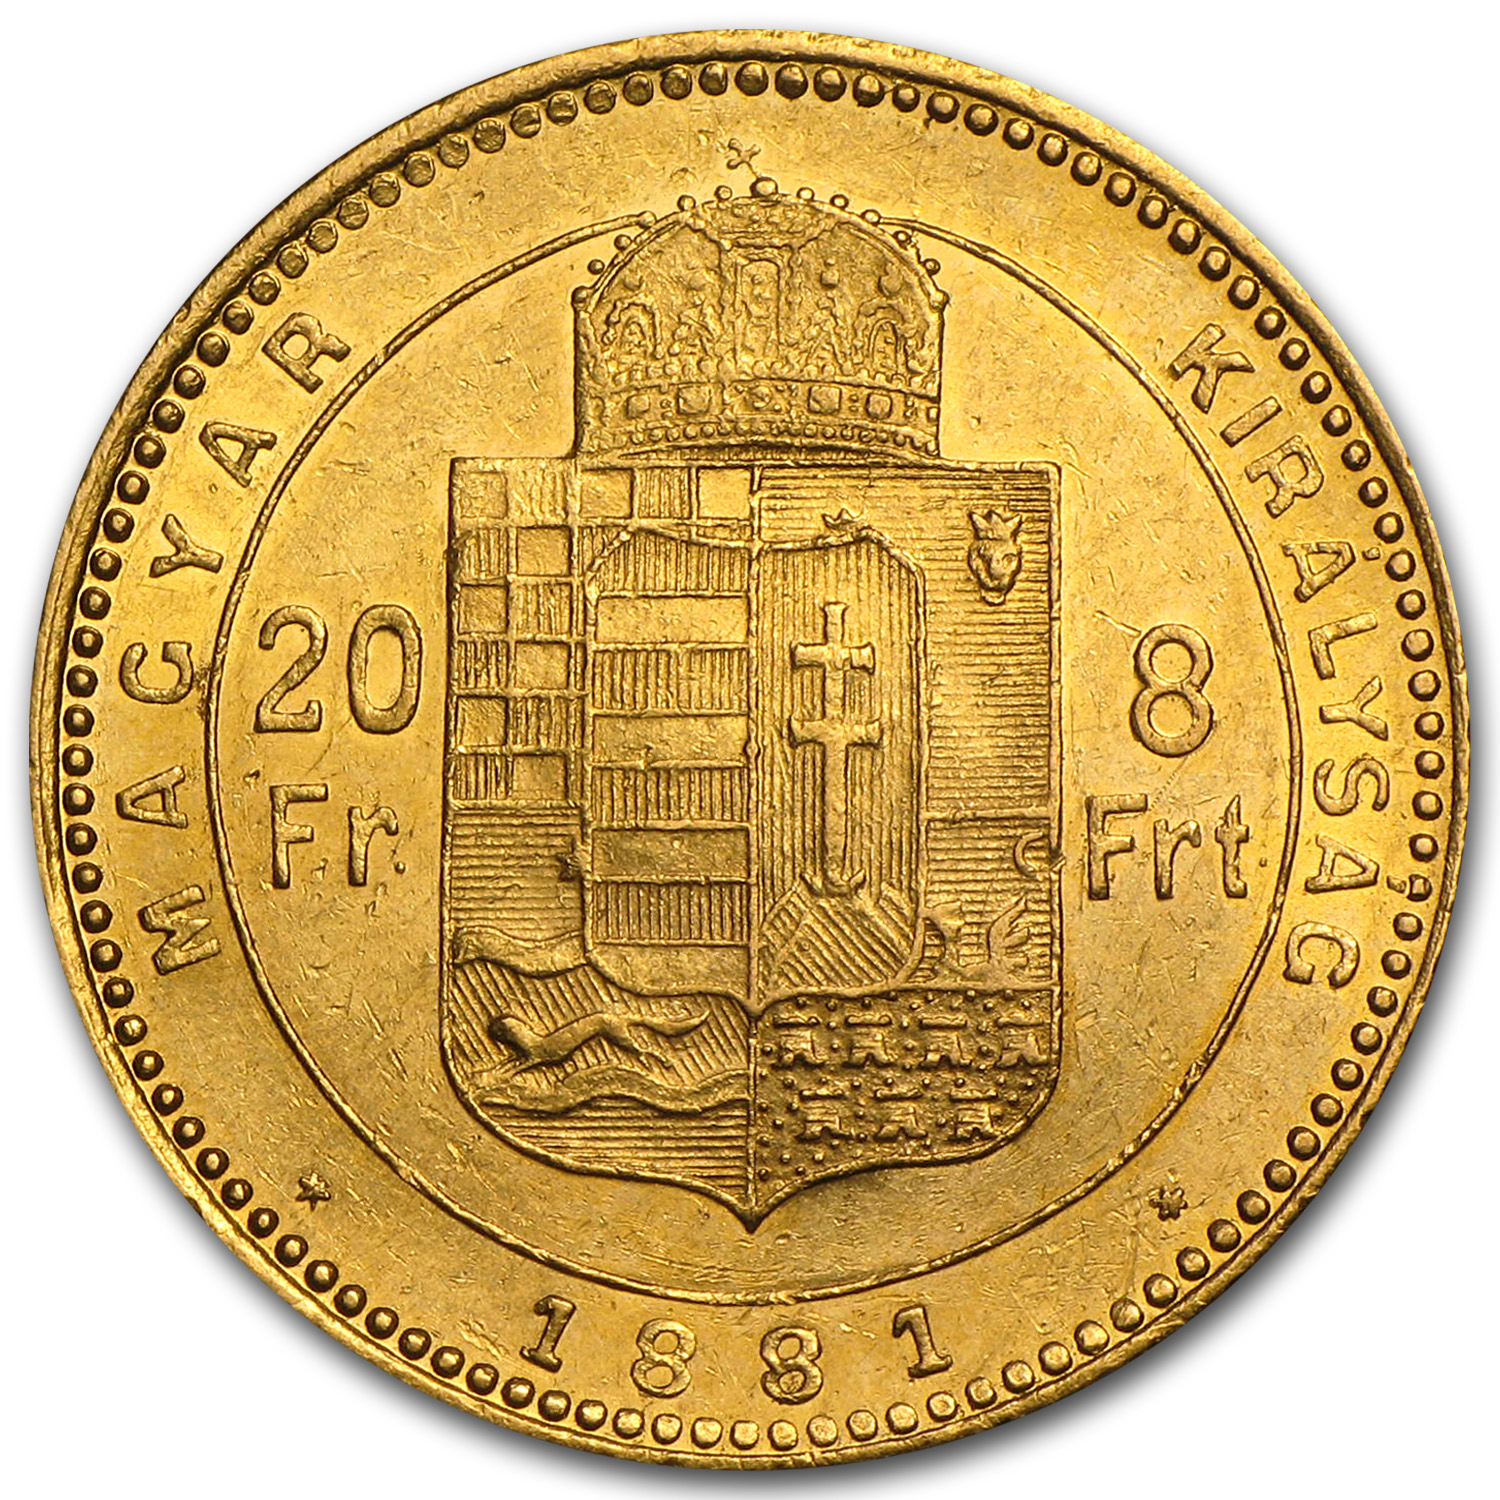 1870-1892 Hungary Gold 8 Forint/20 Franc Average Circ